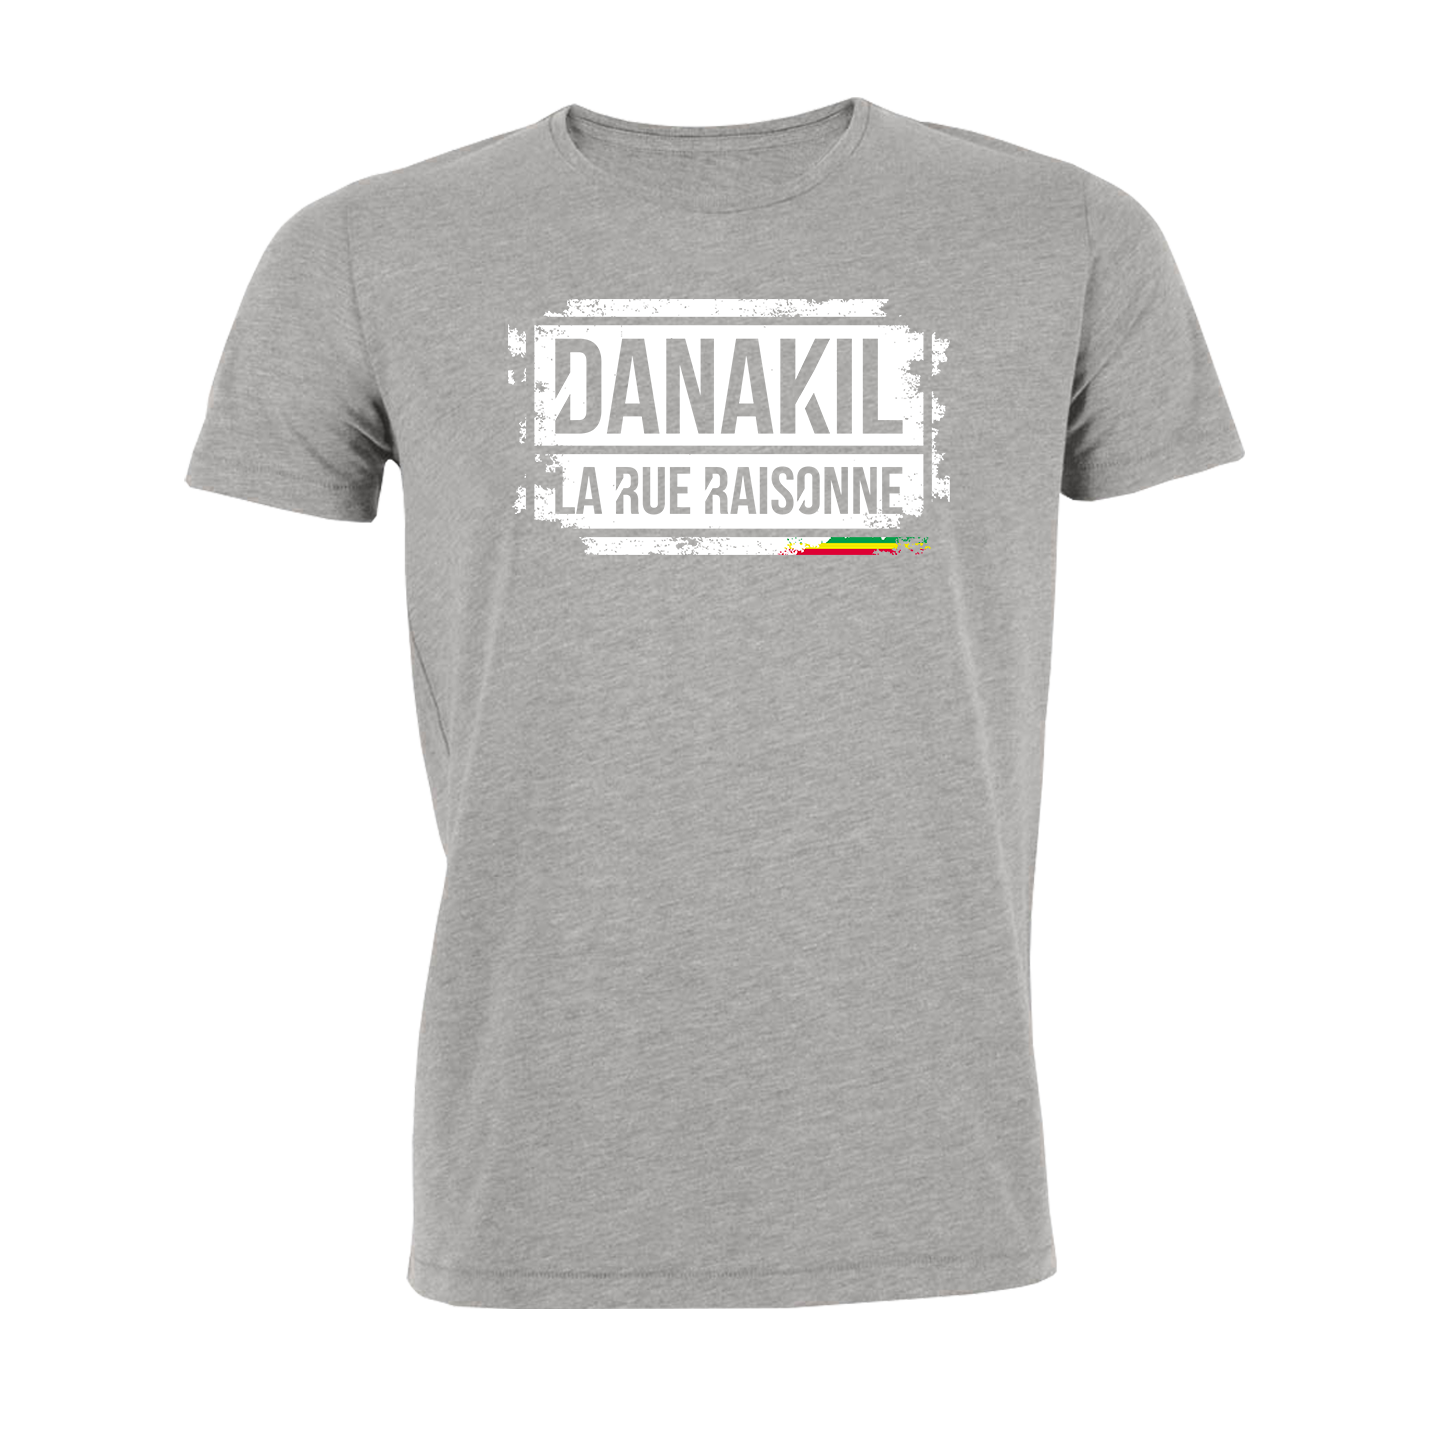 T Shirt Danakil Tampon Red